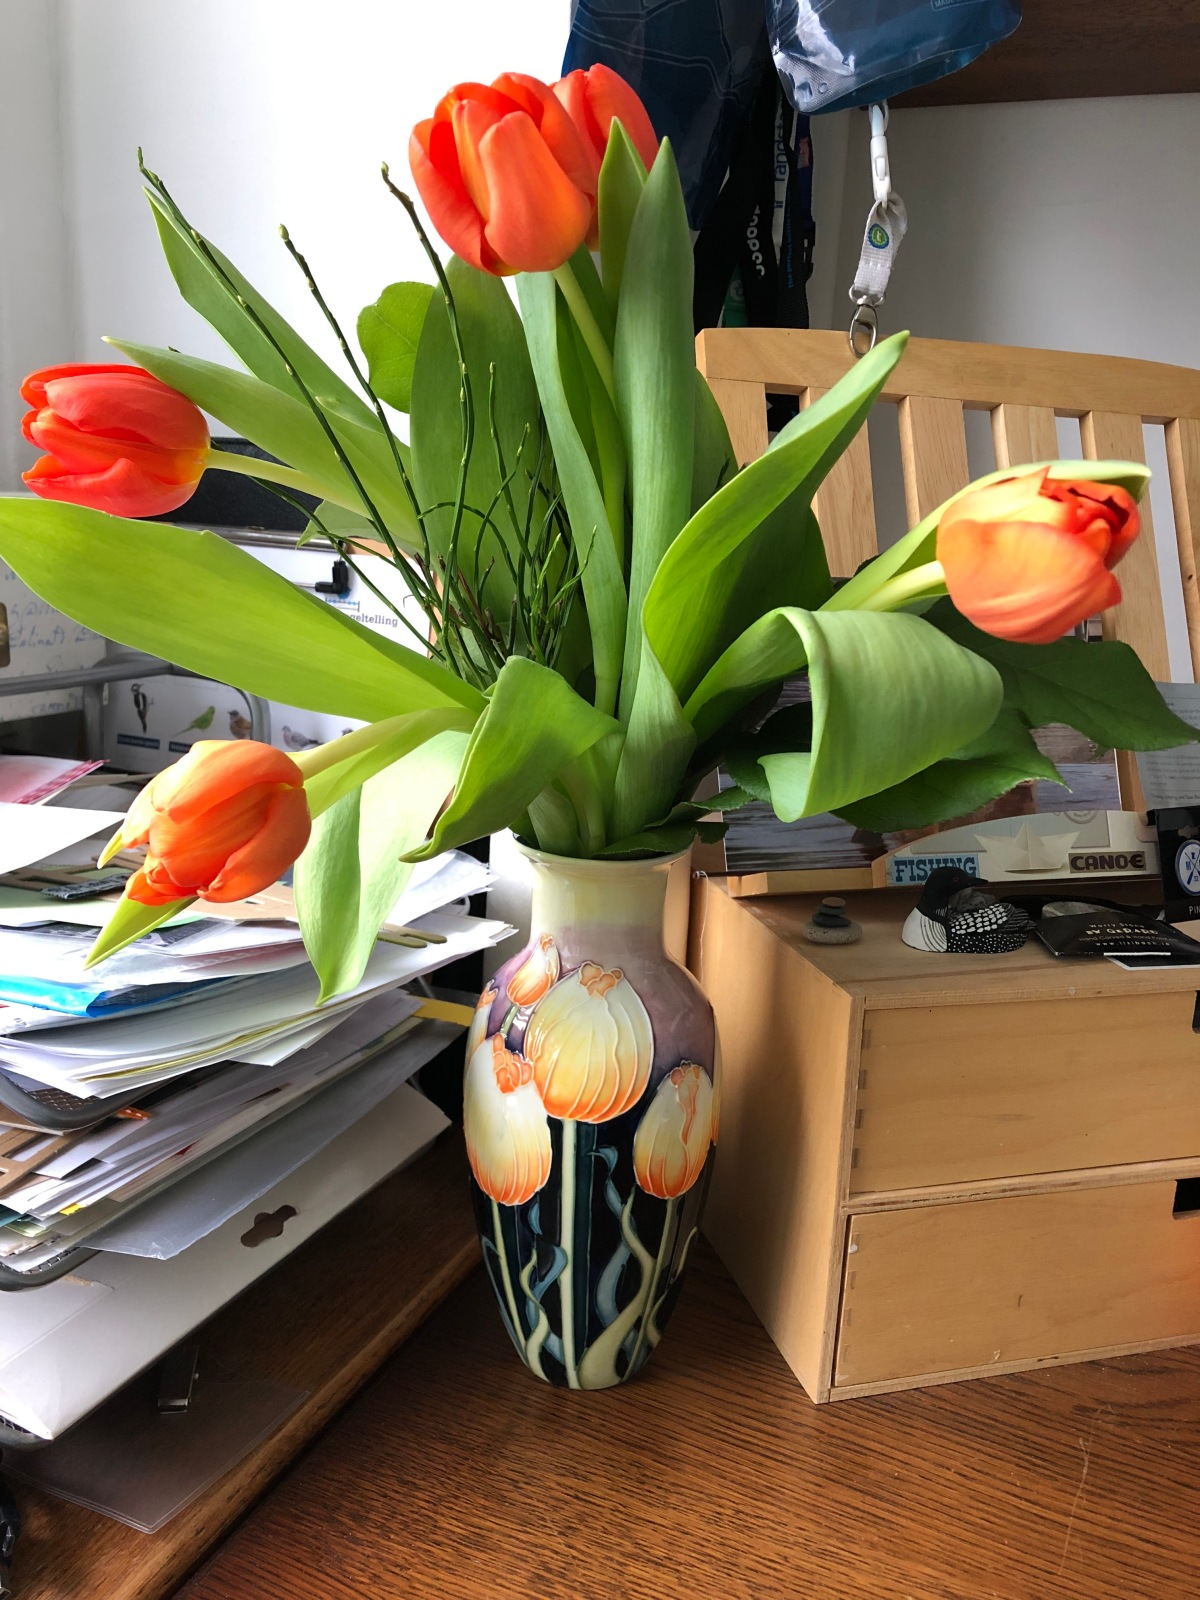 Tulips in The Cedar Journal Office